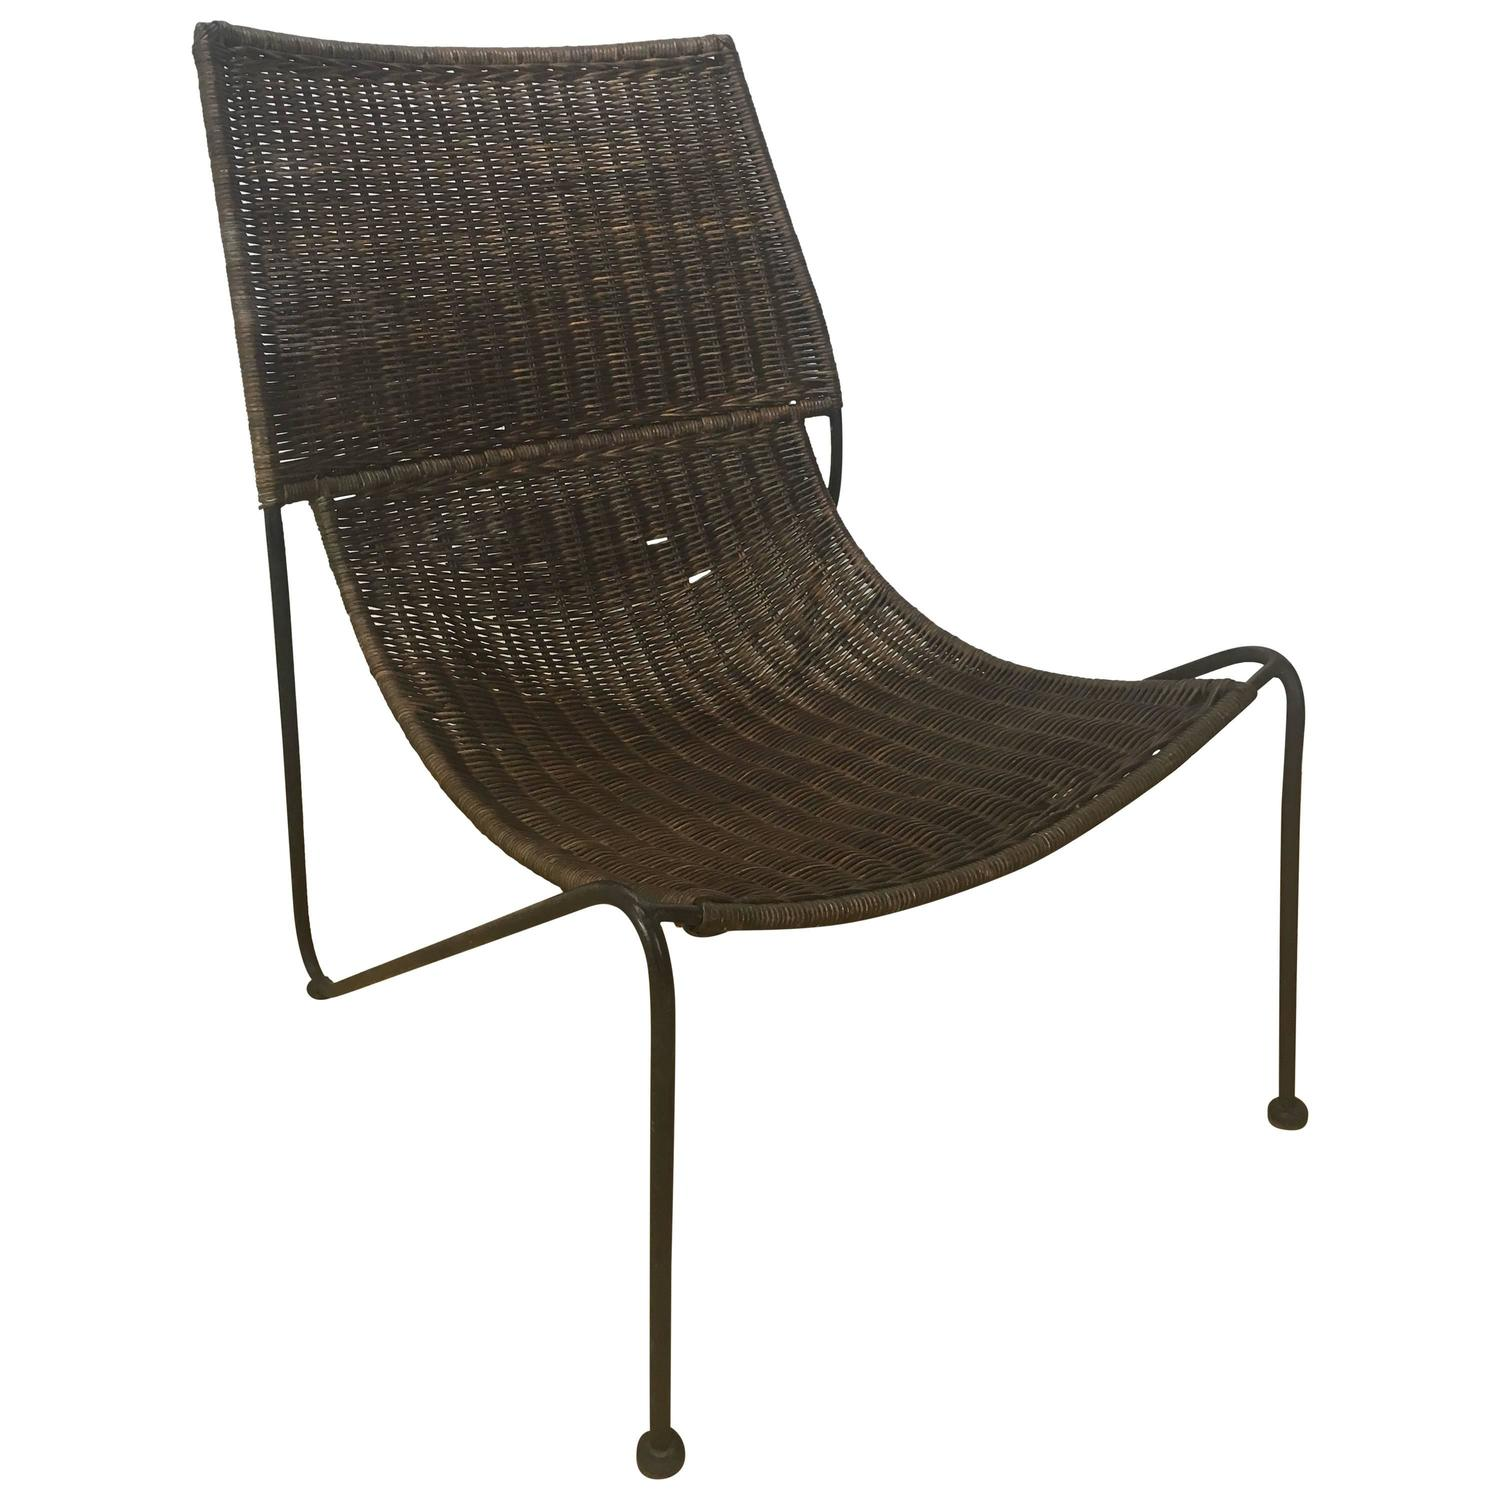 Sculptural Rattan Lounge Chair For Sale at 1stdibs